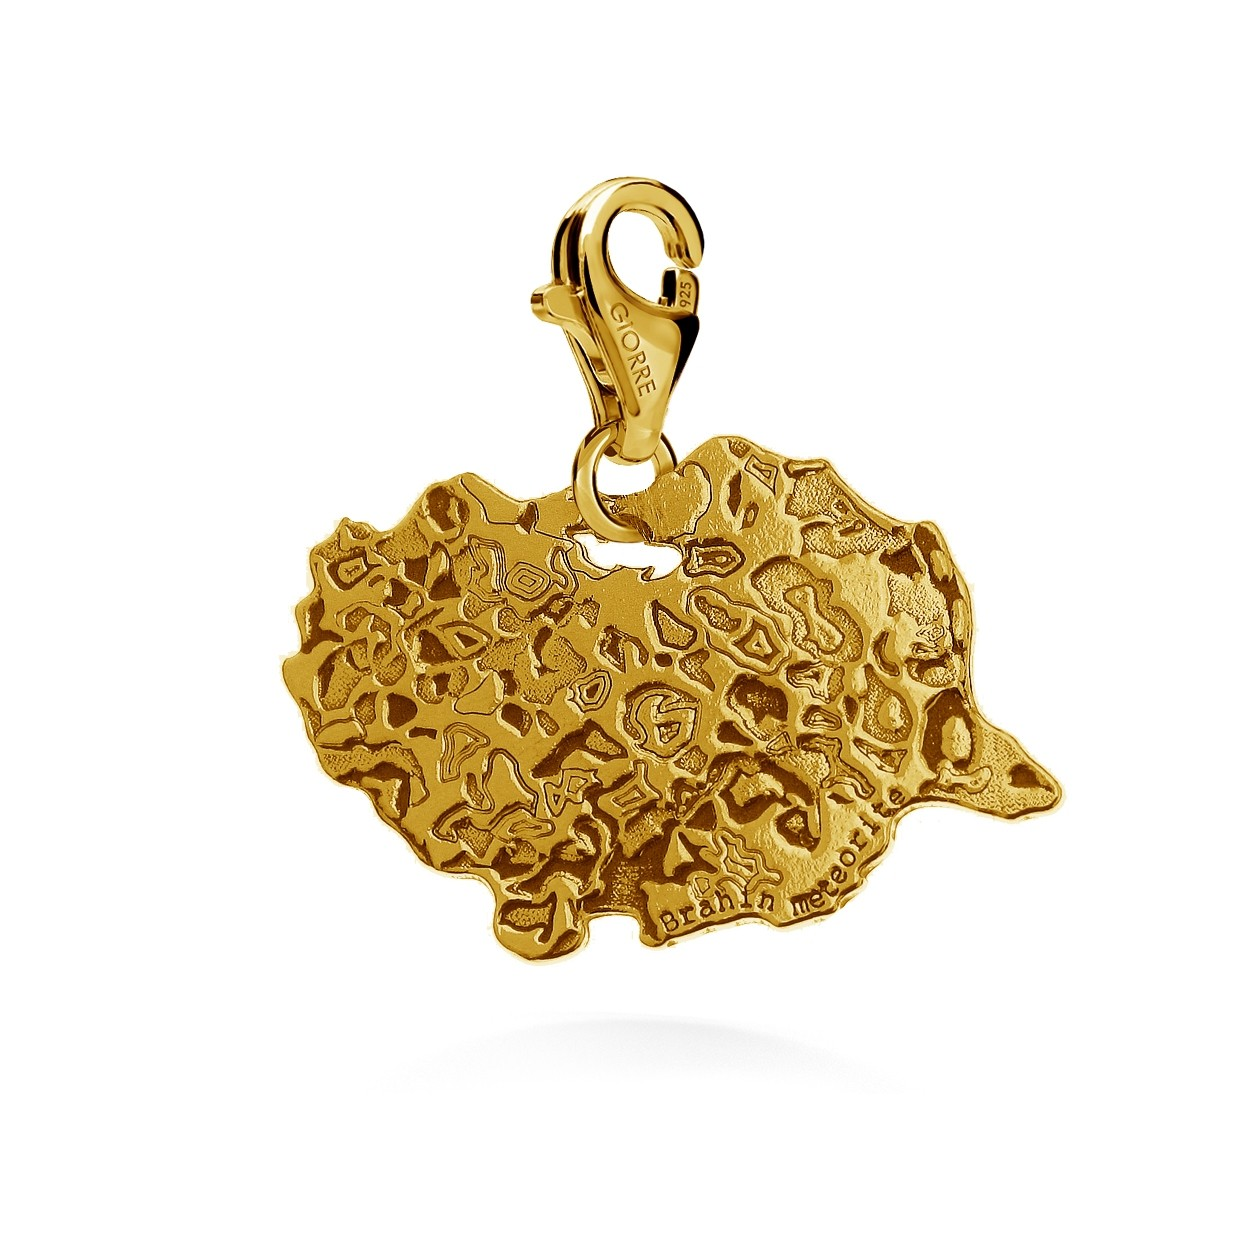 CHARMS 9, METEORITE, STERLING SILVER RHODIUM OR 24K GOLD PLATED